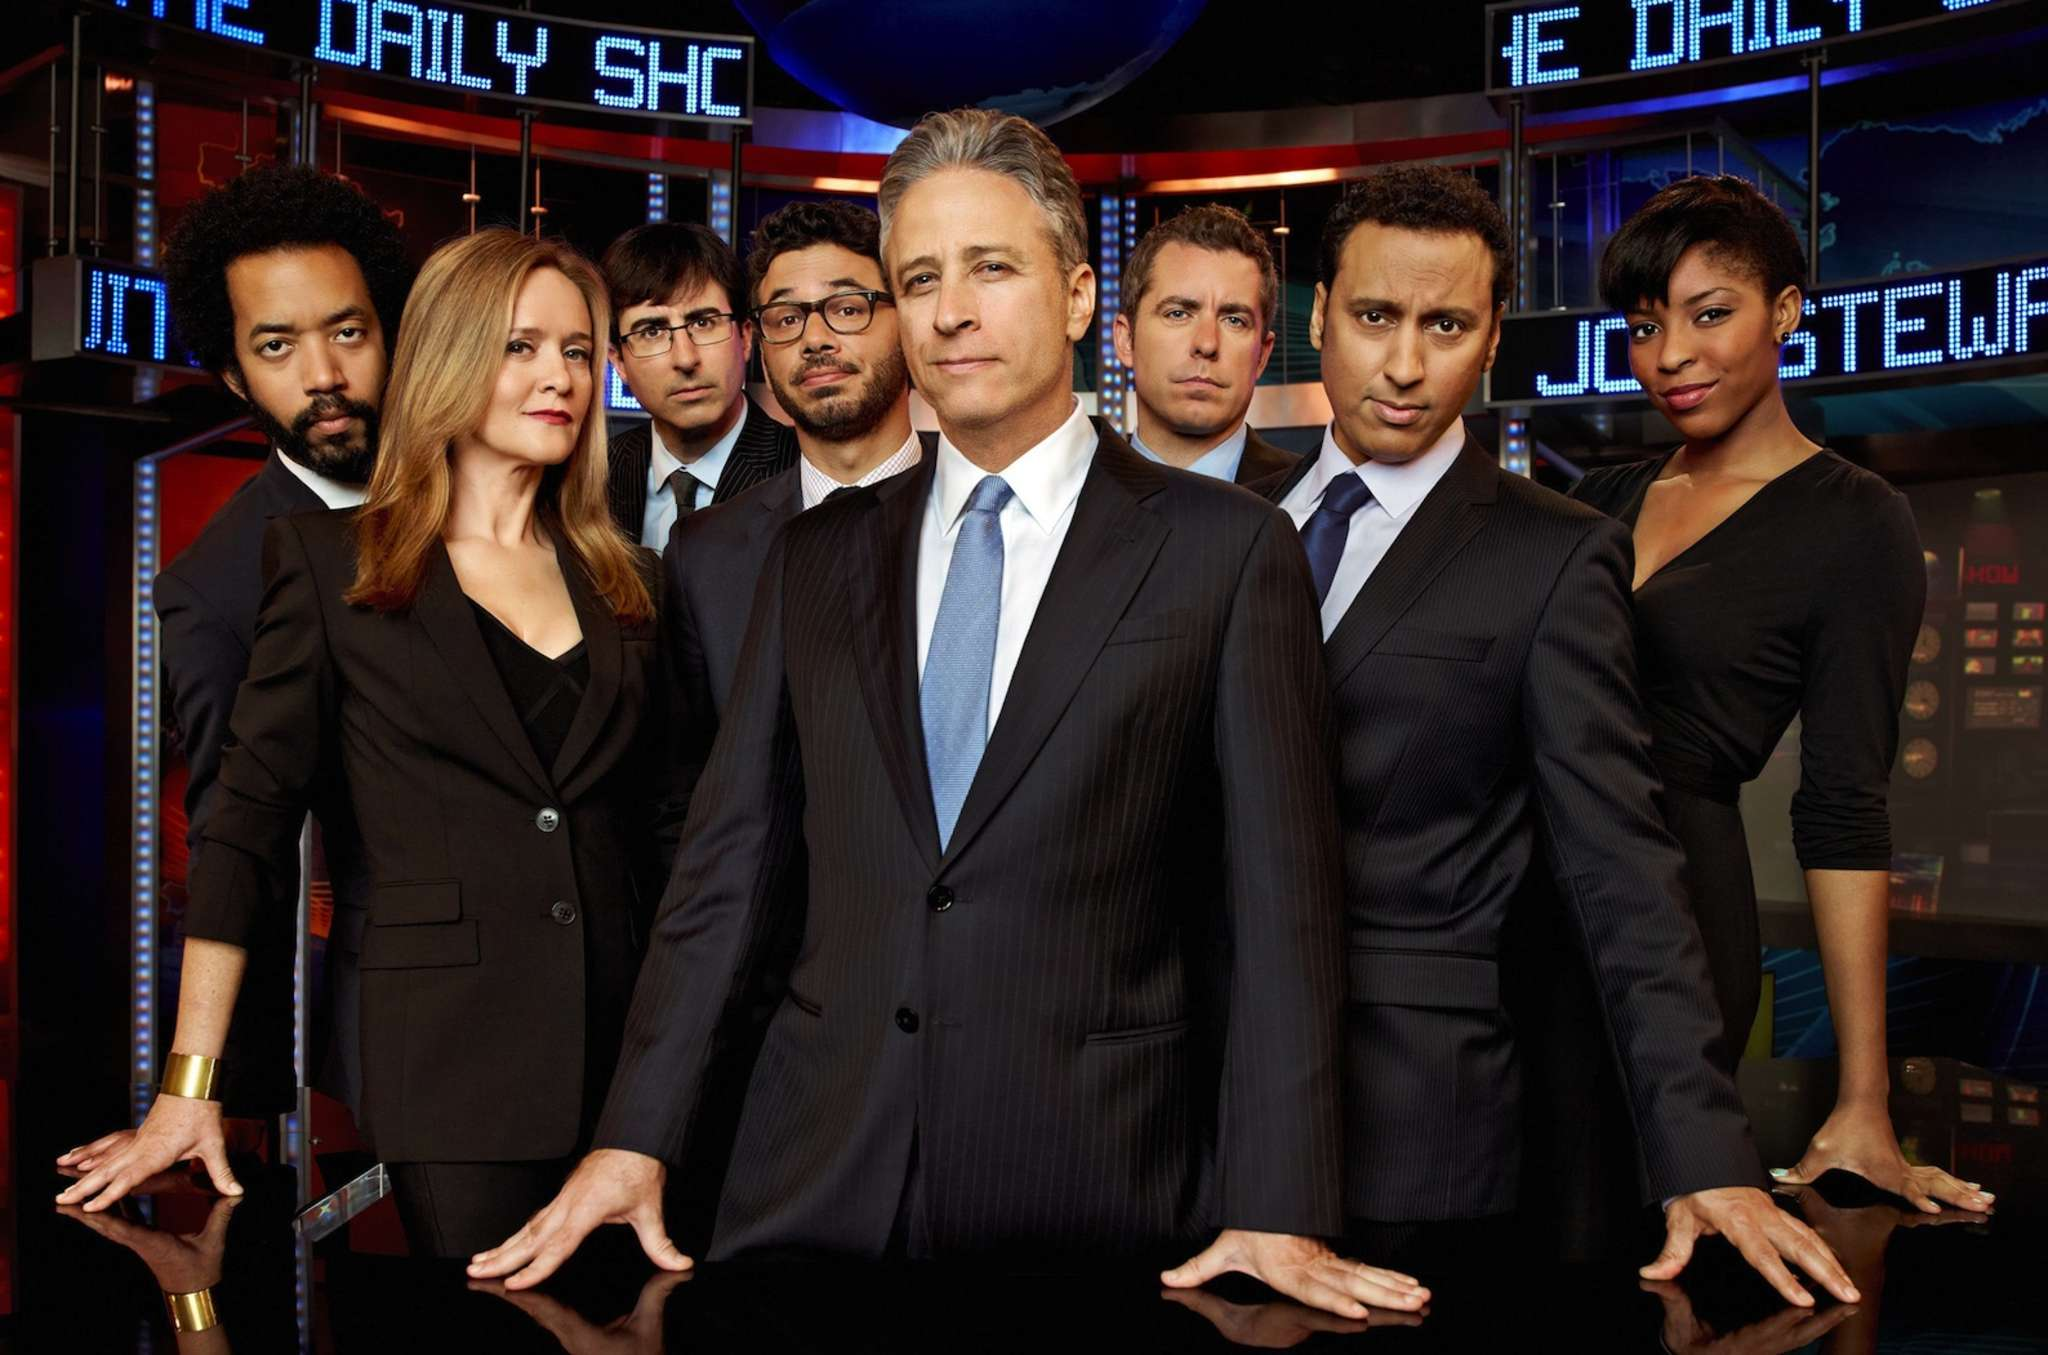 "Jon Stewart, former host of ""The Daily Show"" (center), with (from left) Wyatt Cenac, Samantha Bee, John Oliver, Al Madrigal, Jason Jones, Aasif Mandvi, and Jessica Williams."